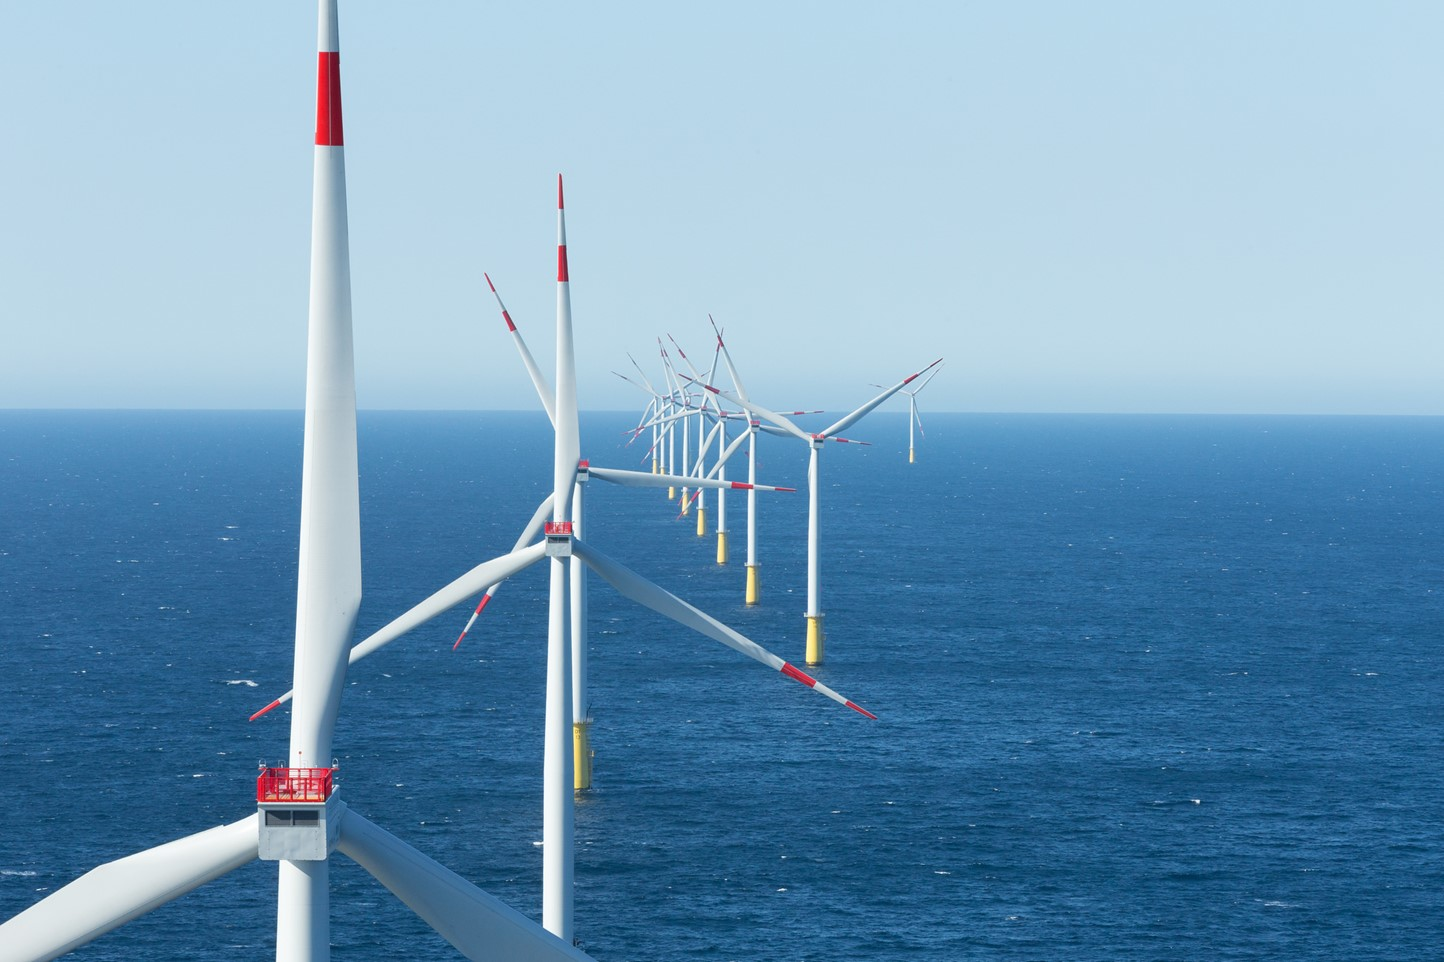 Windpark op zee | Vattenfall over windenergie